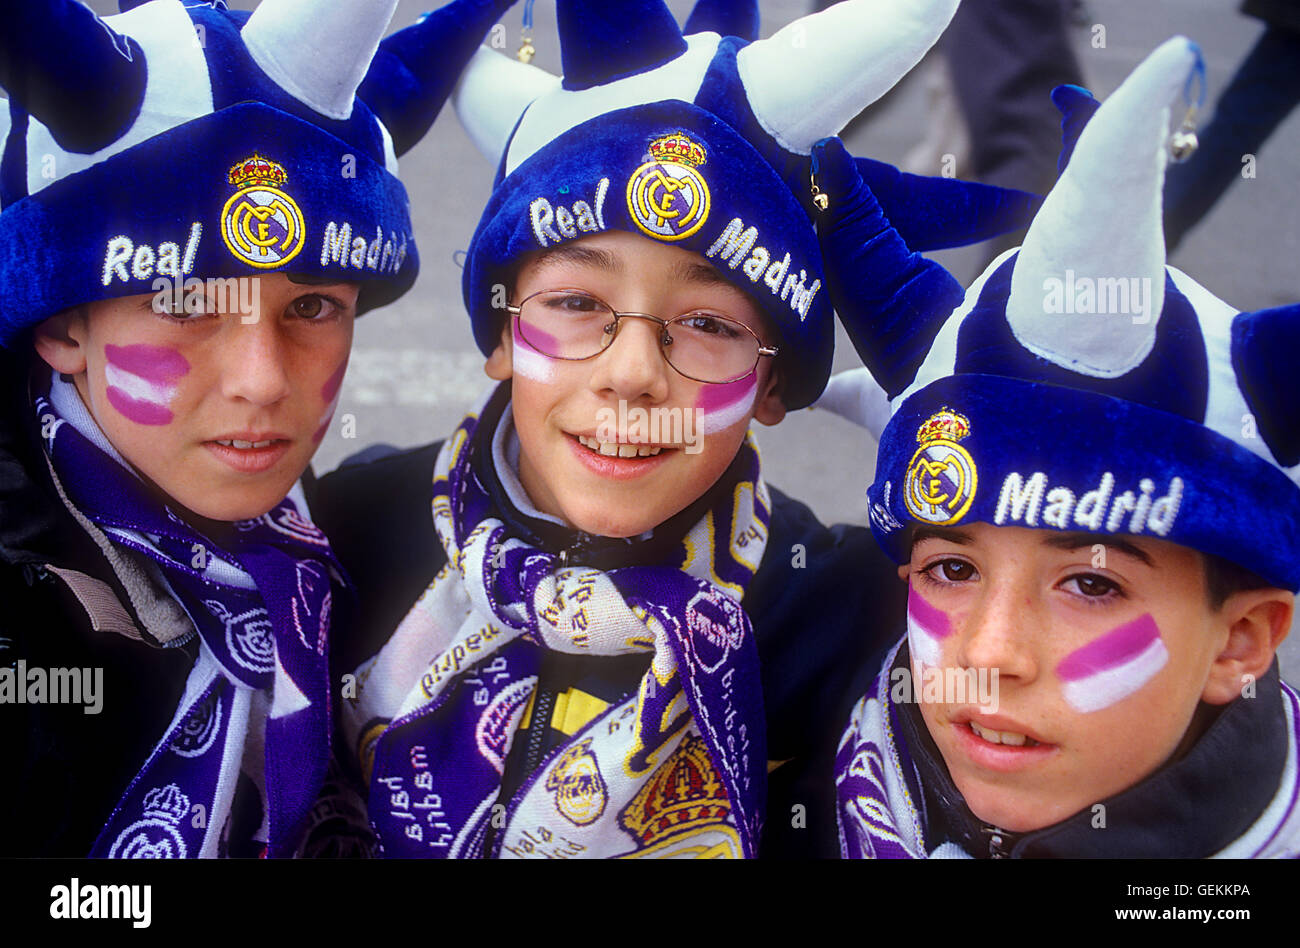 23ee68b74 Real Madrid Fans Stock Photos & Real Madrid Fans Stock Images - Alamy